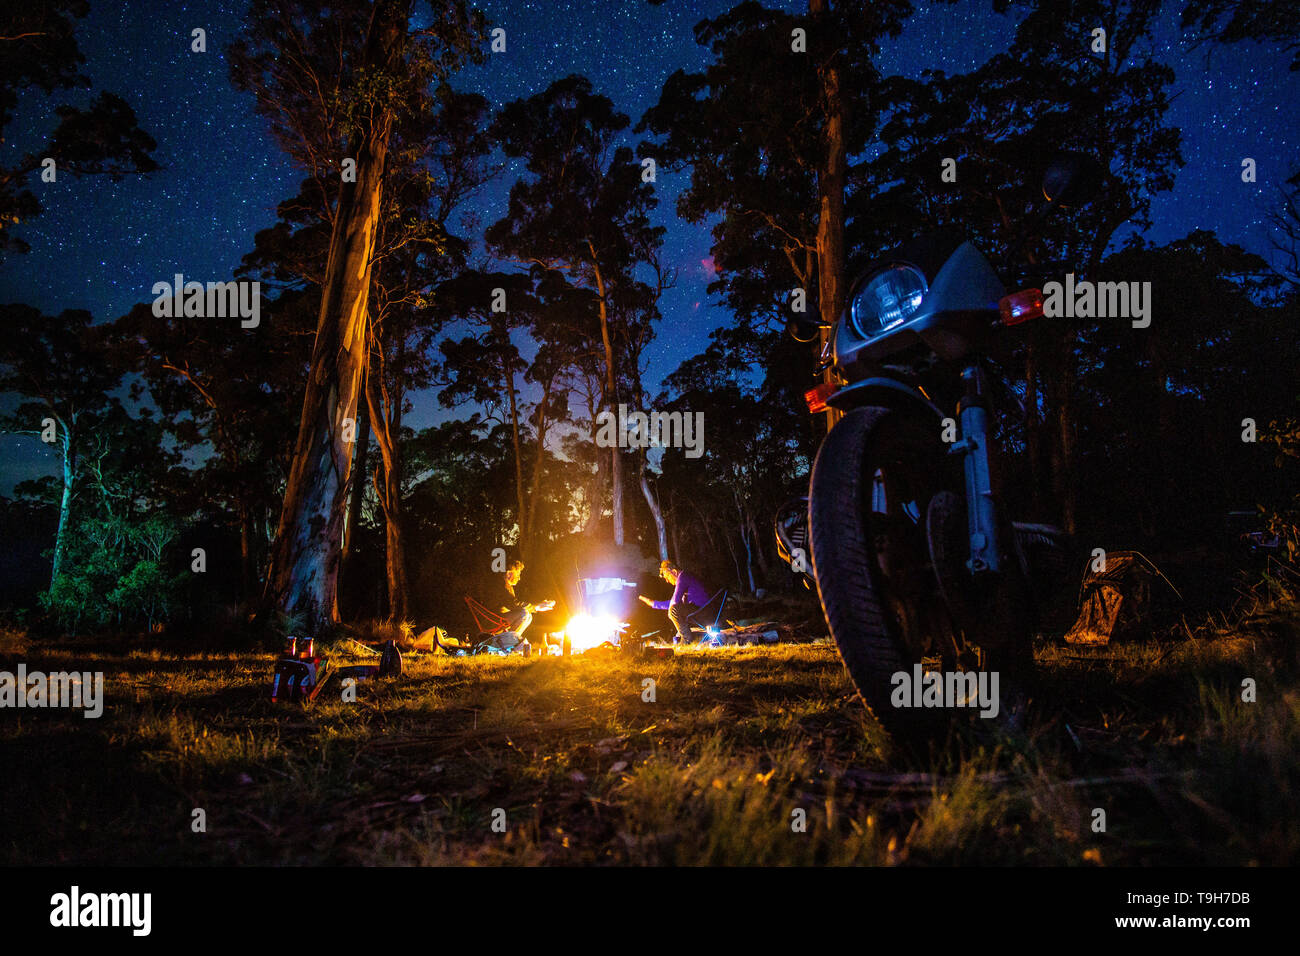 Camping under the stars during a motorcycle trip in Australia - Stock Image